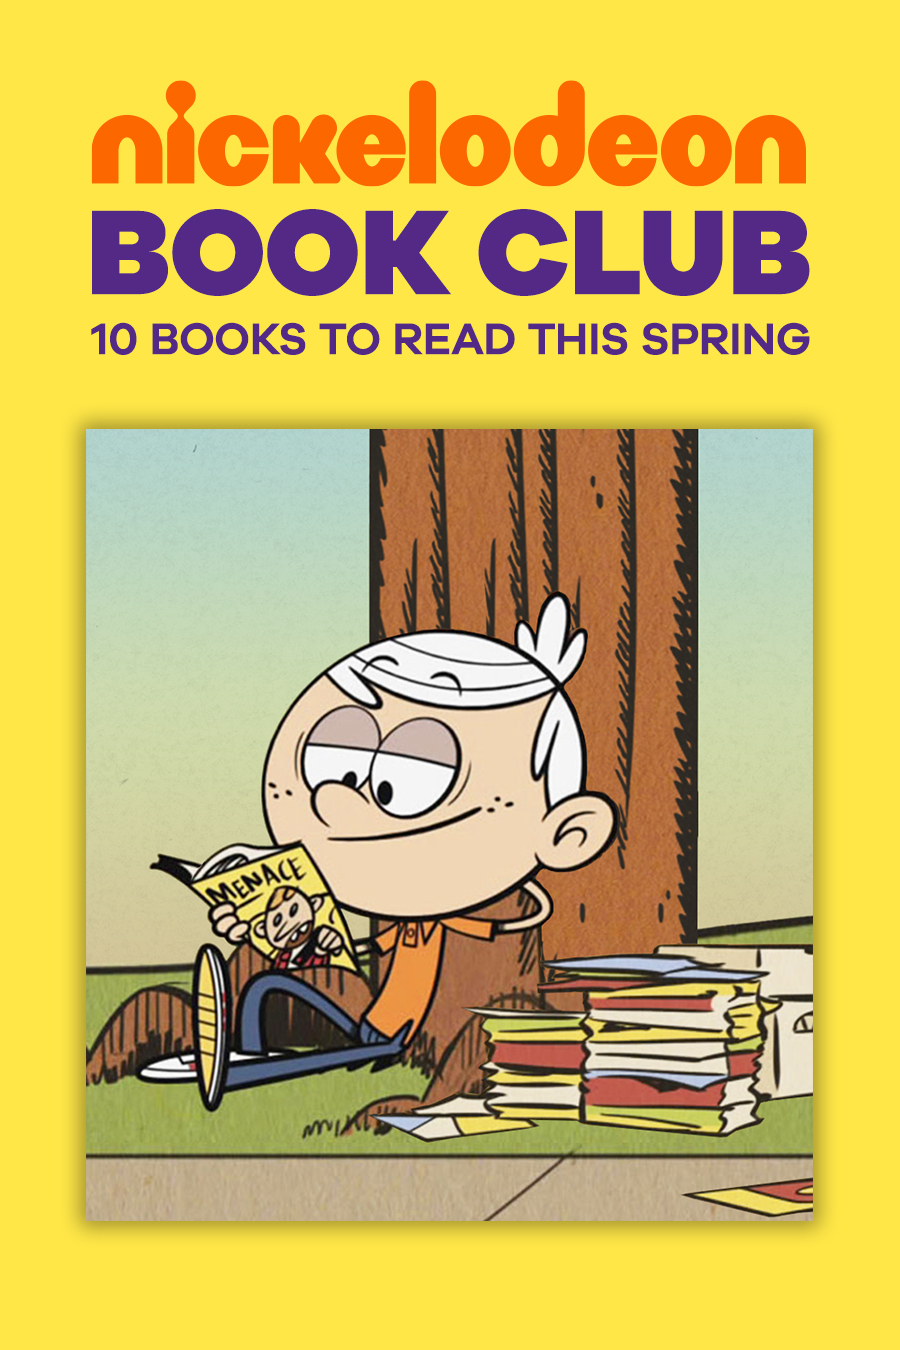 Nick Book Club